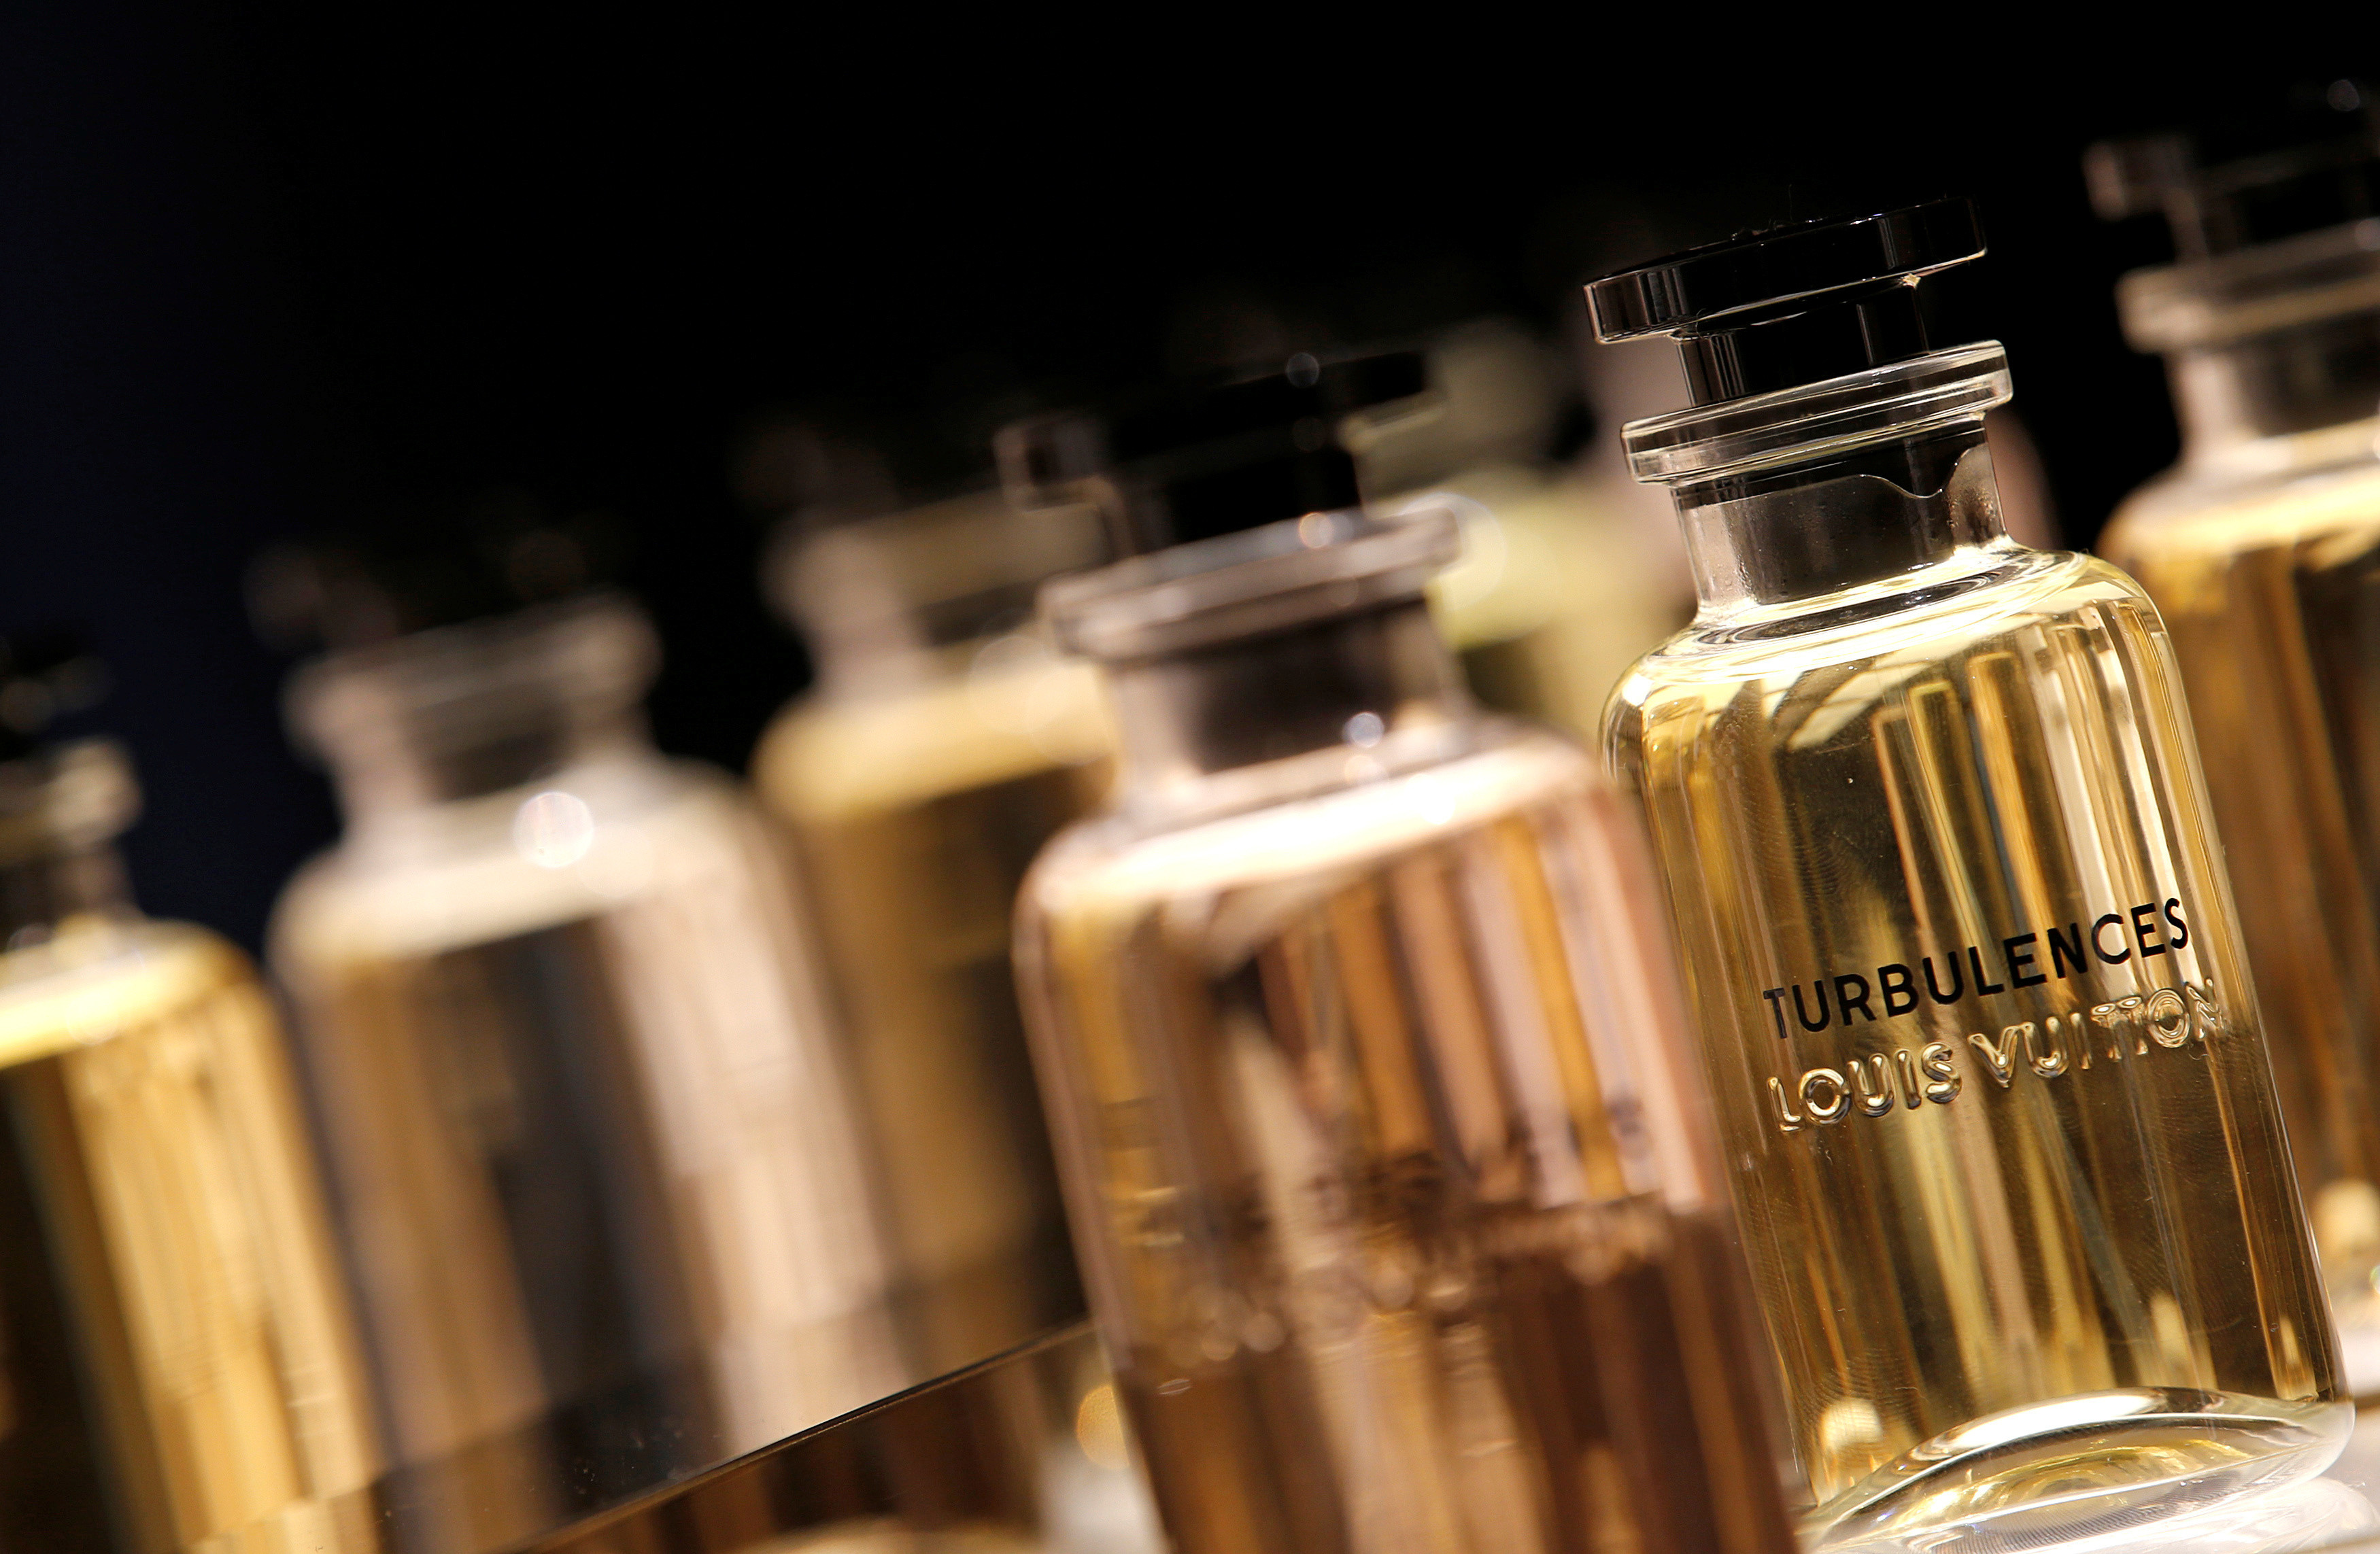 LVMH will use perfume production lines to produce hydroalcoholic gels